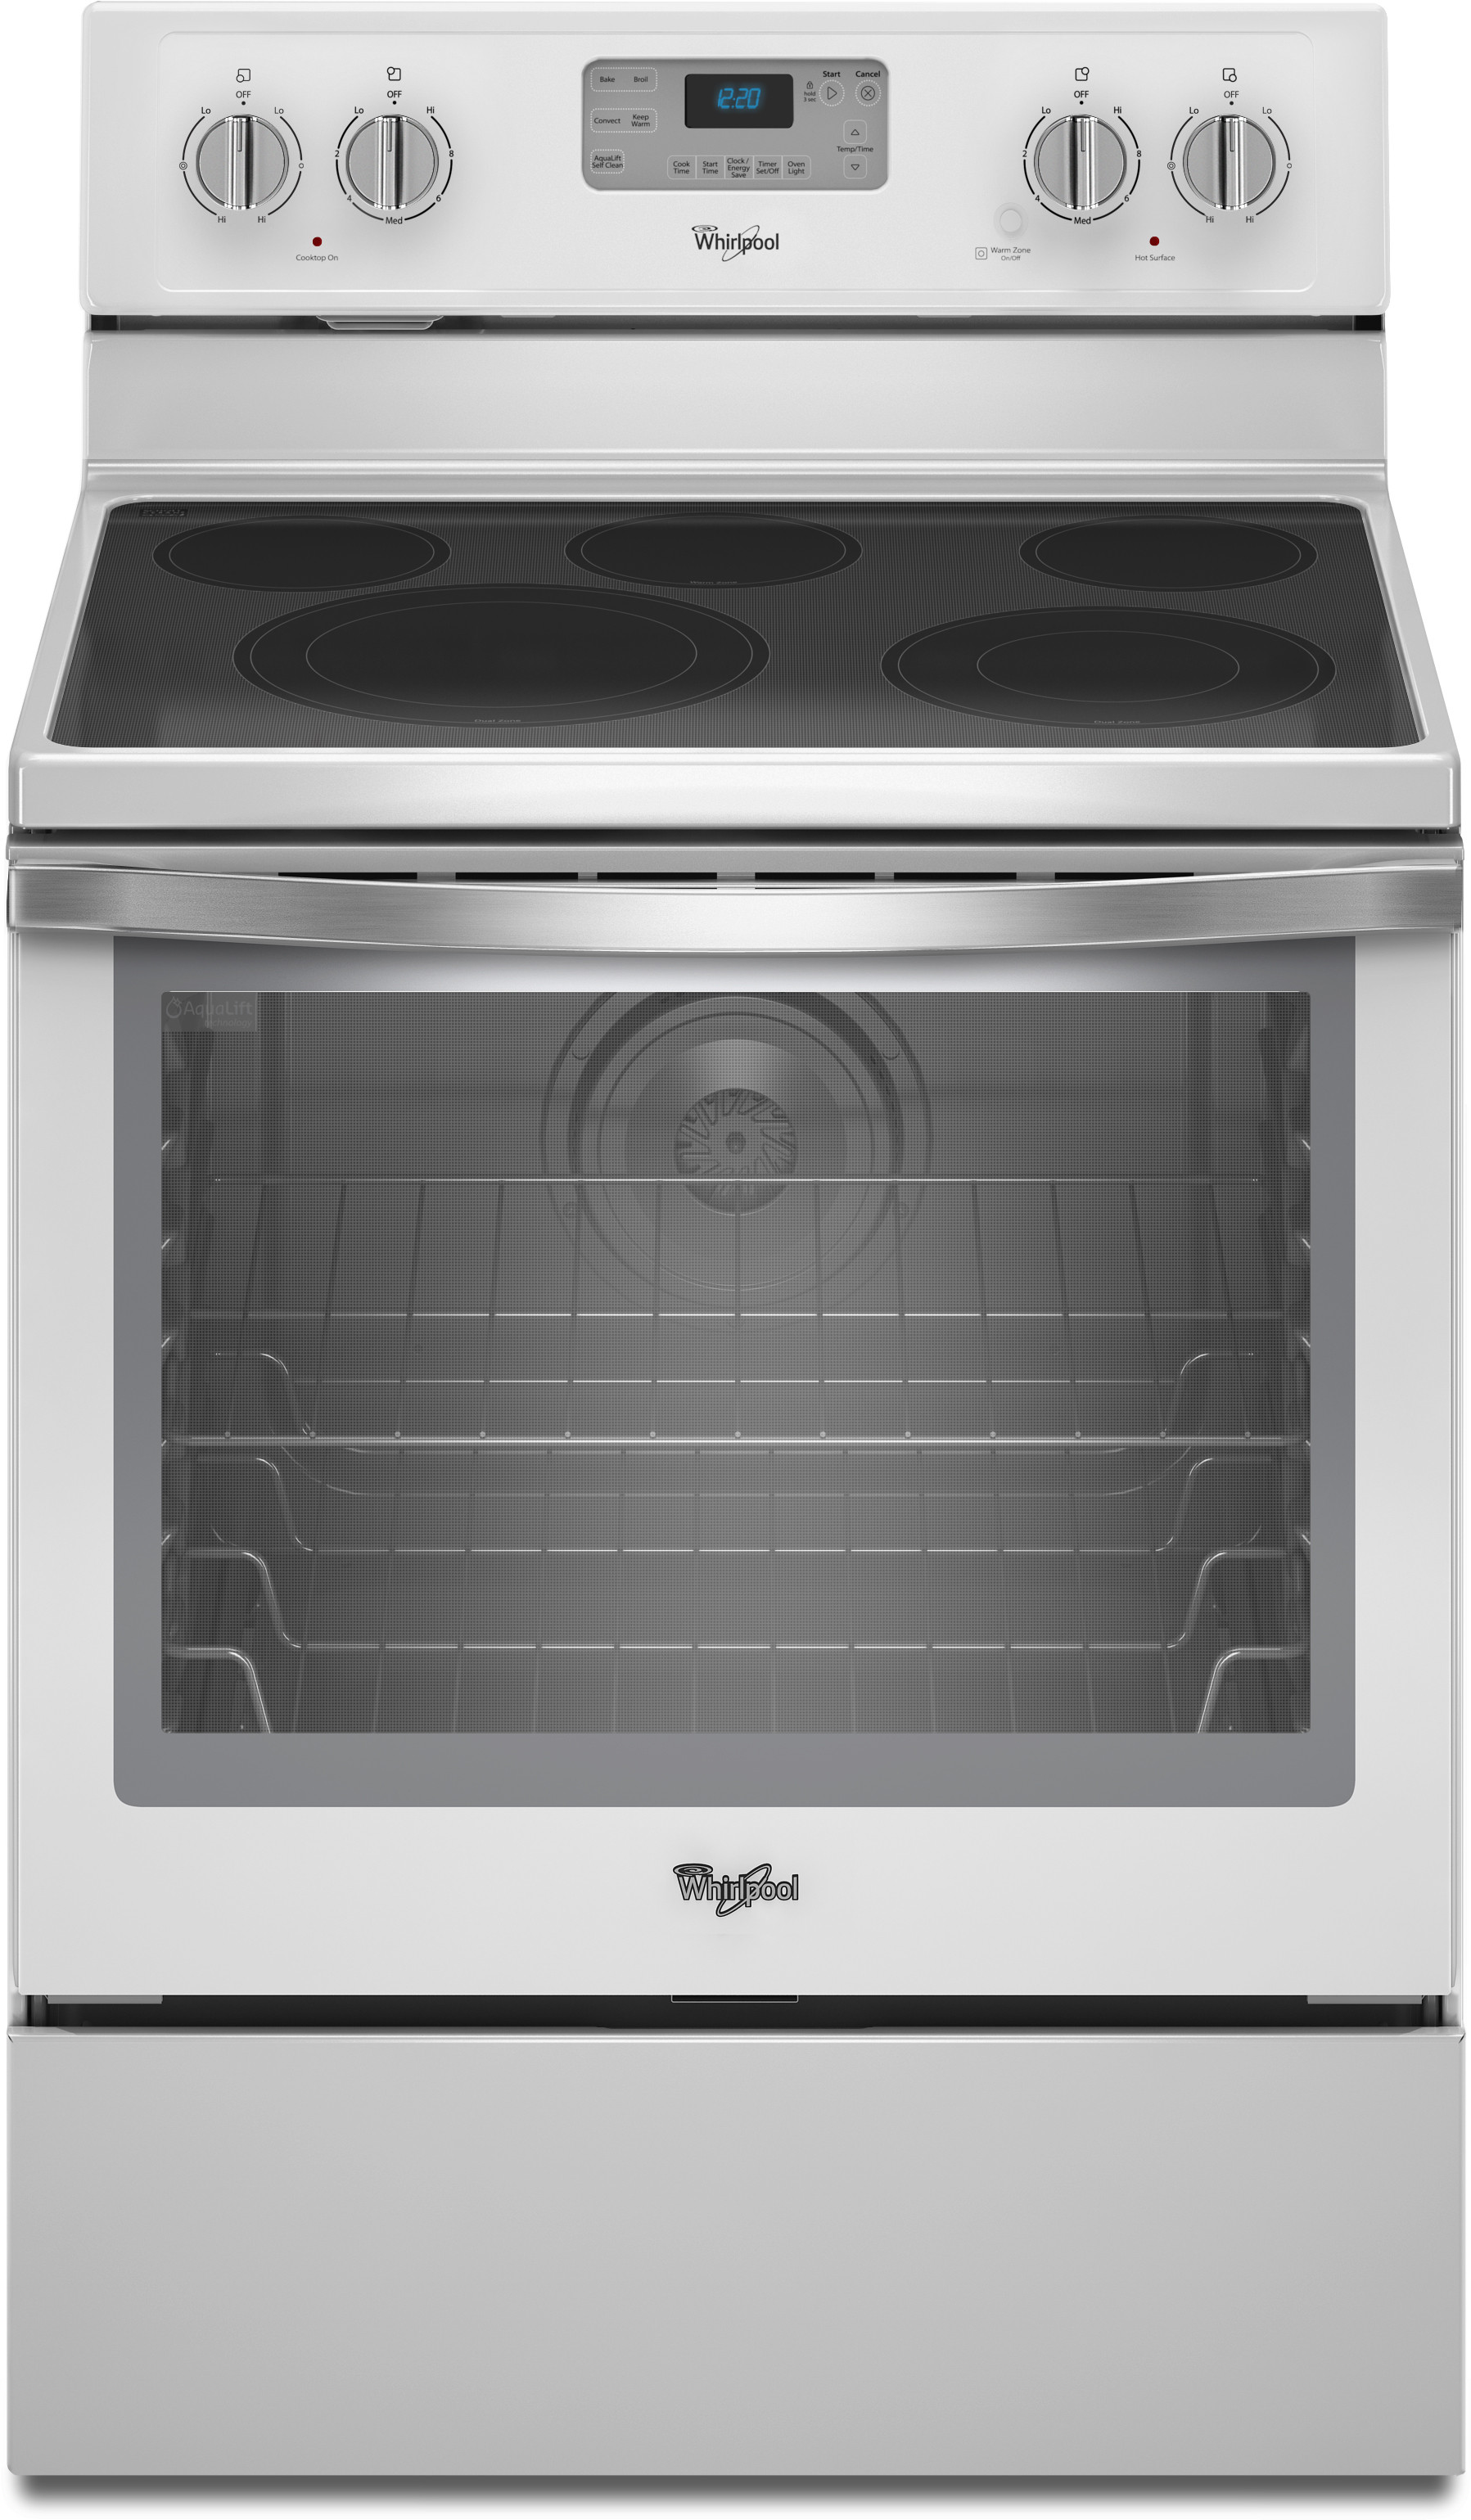 Whirlpool white ice cooktop - Whirlpool White Ice Cooktop